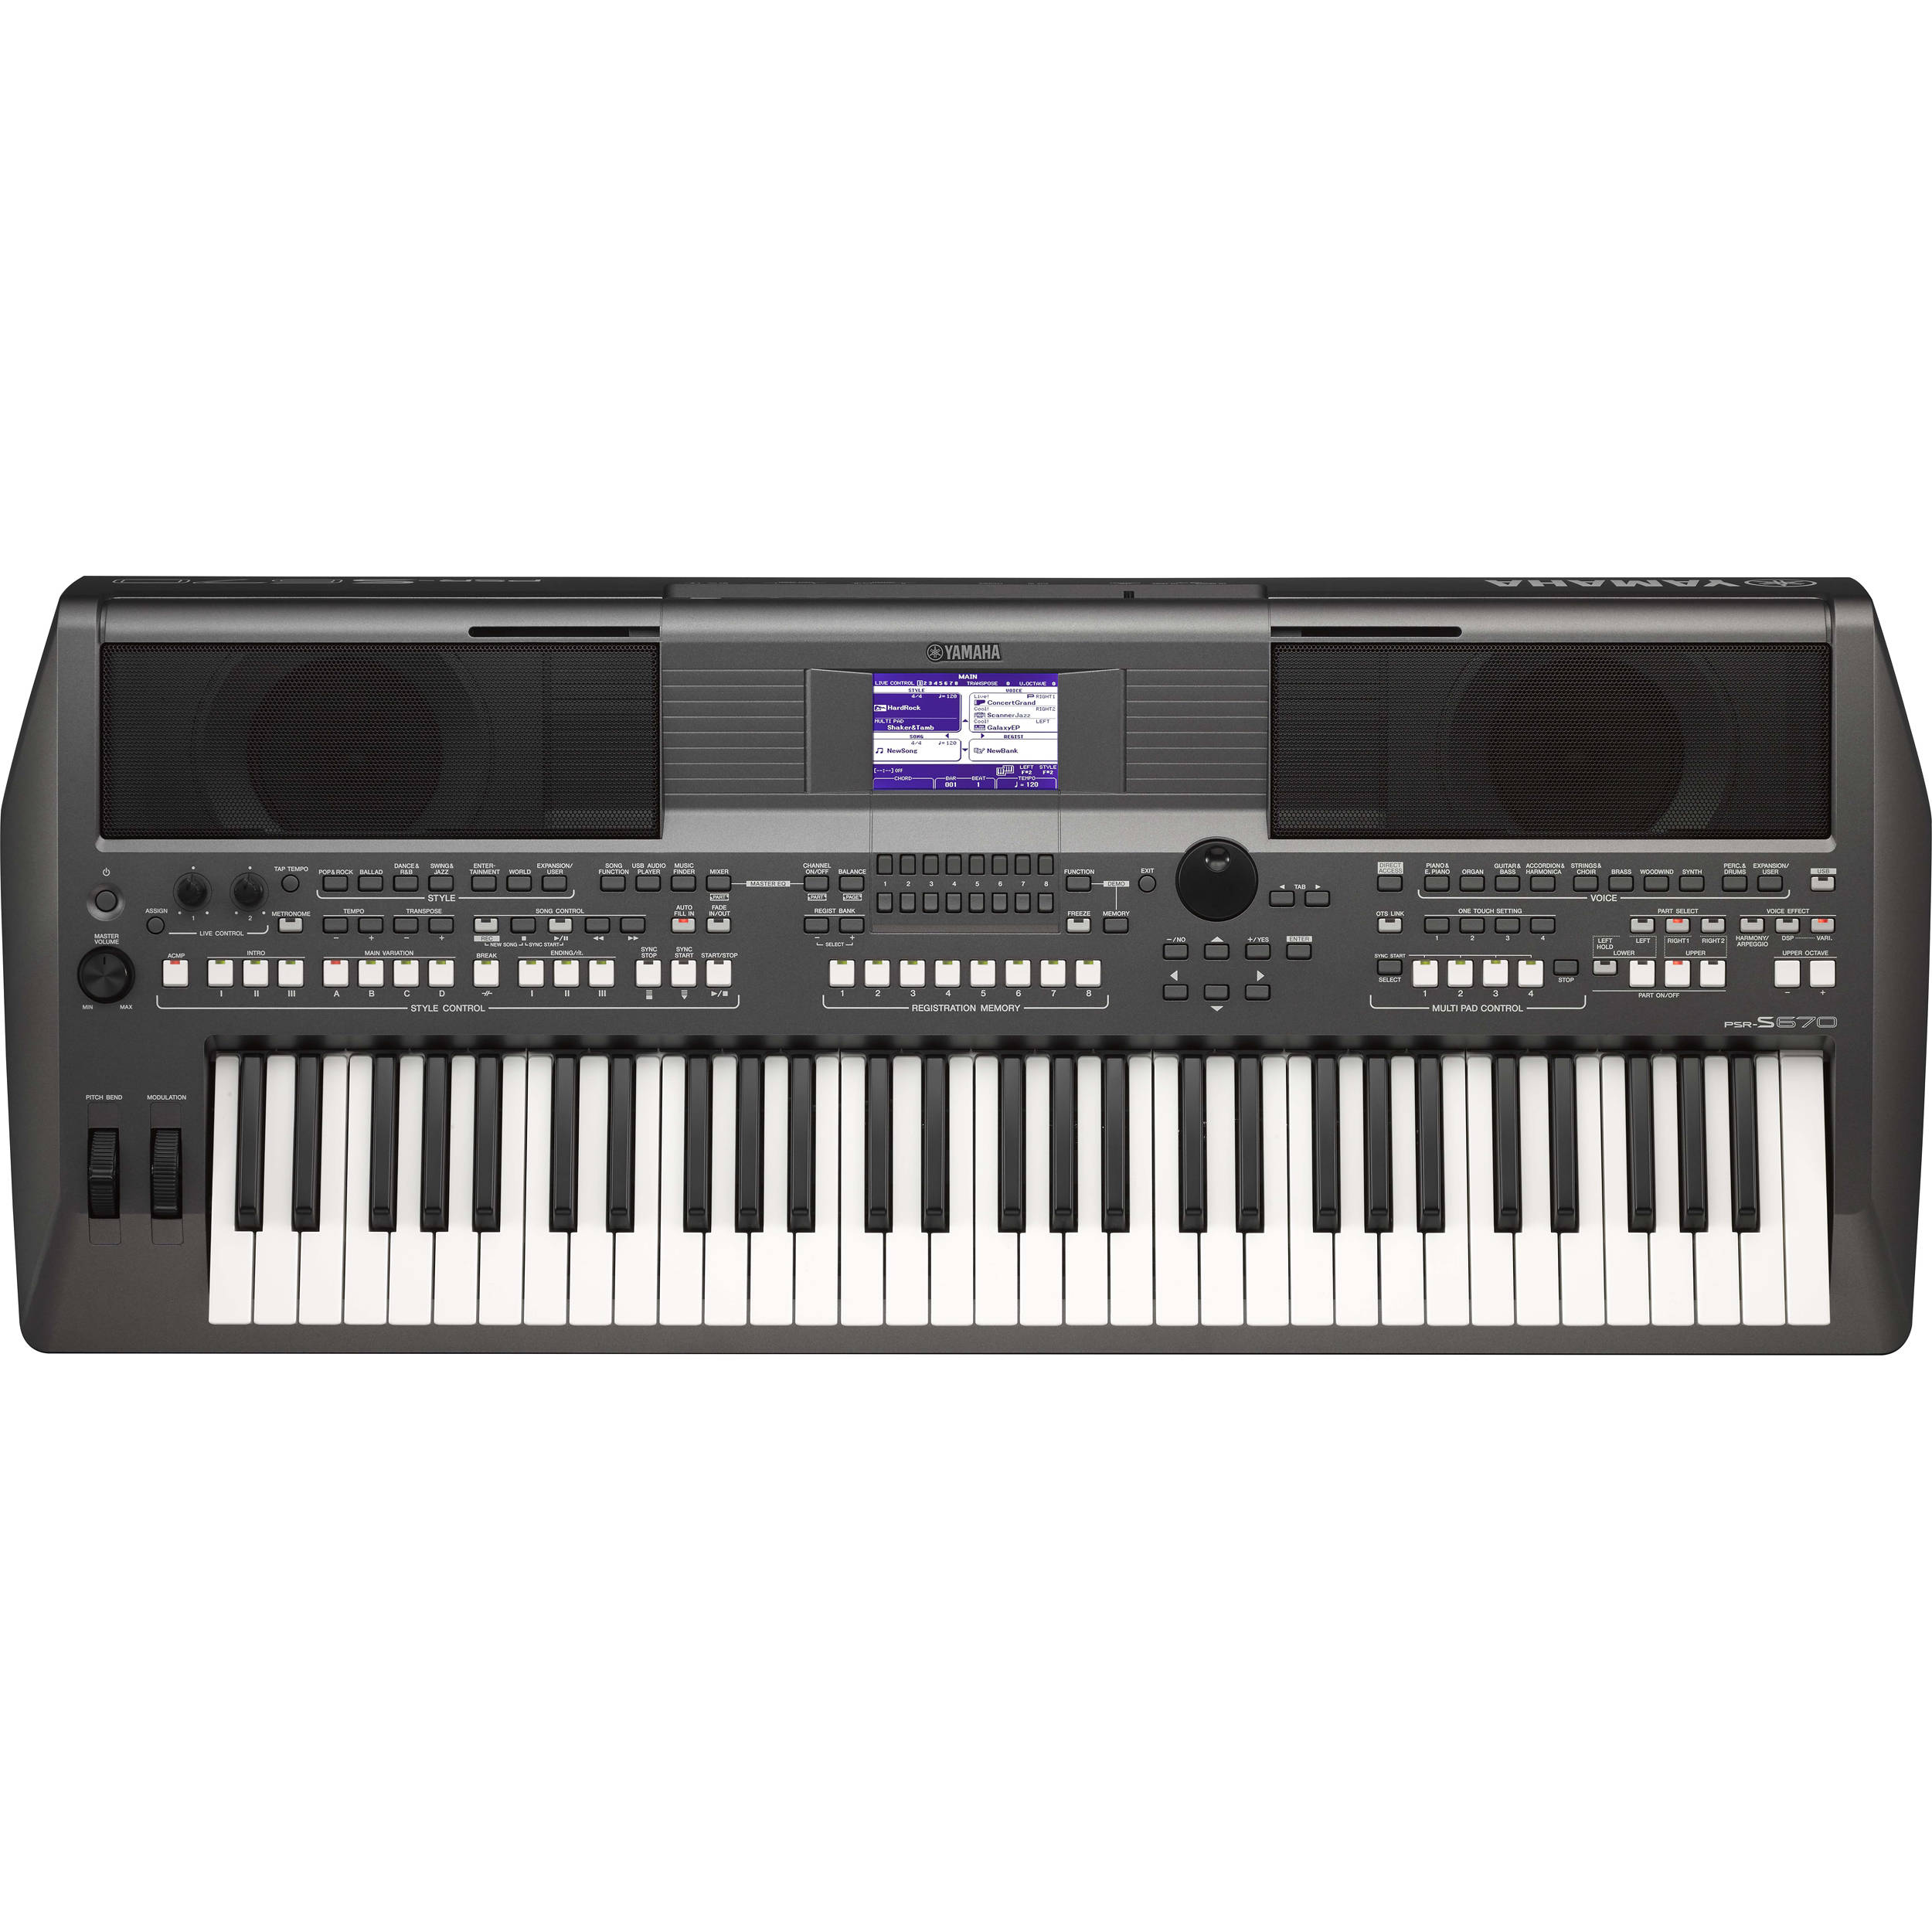 yamaha psr s670 arranger workstation psrs670 b h photo video. Black Bedroom Furniture Sets. Home Design Ideas